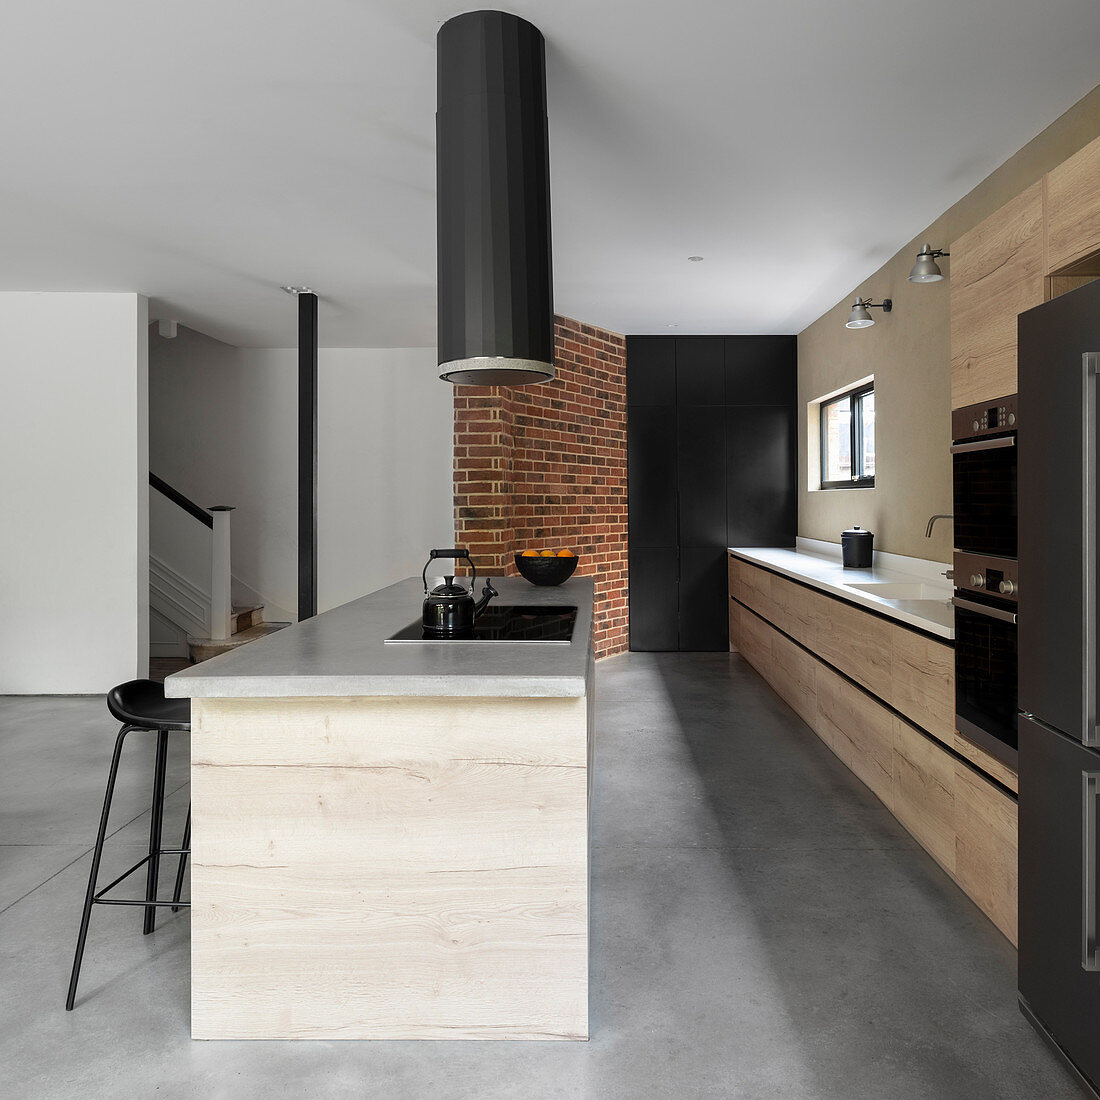 Extractor above island counter